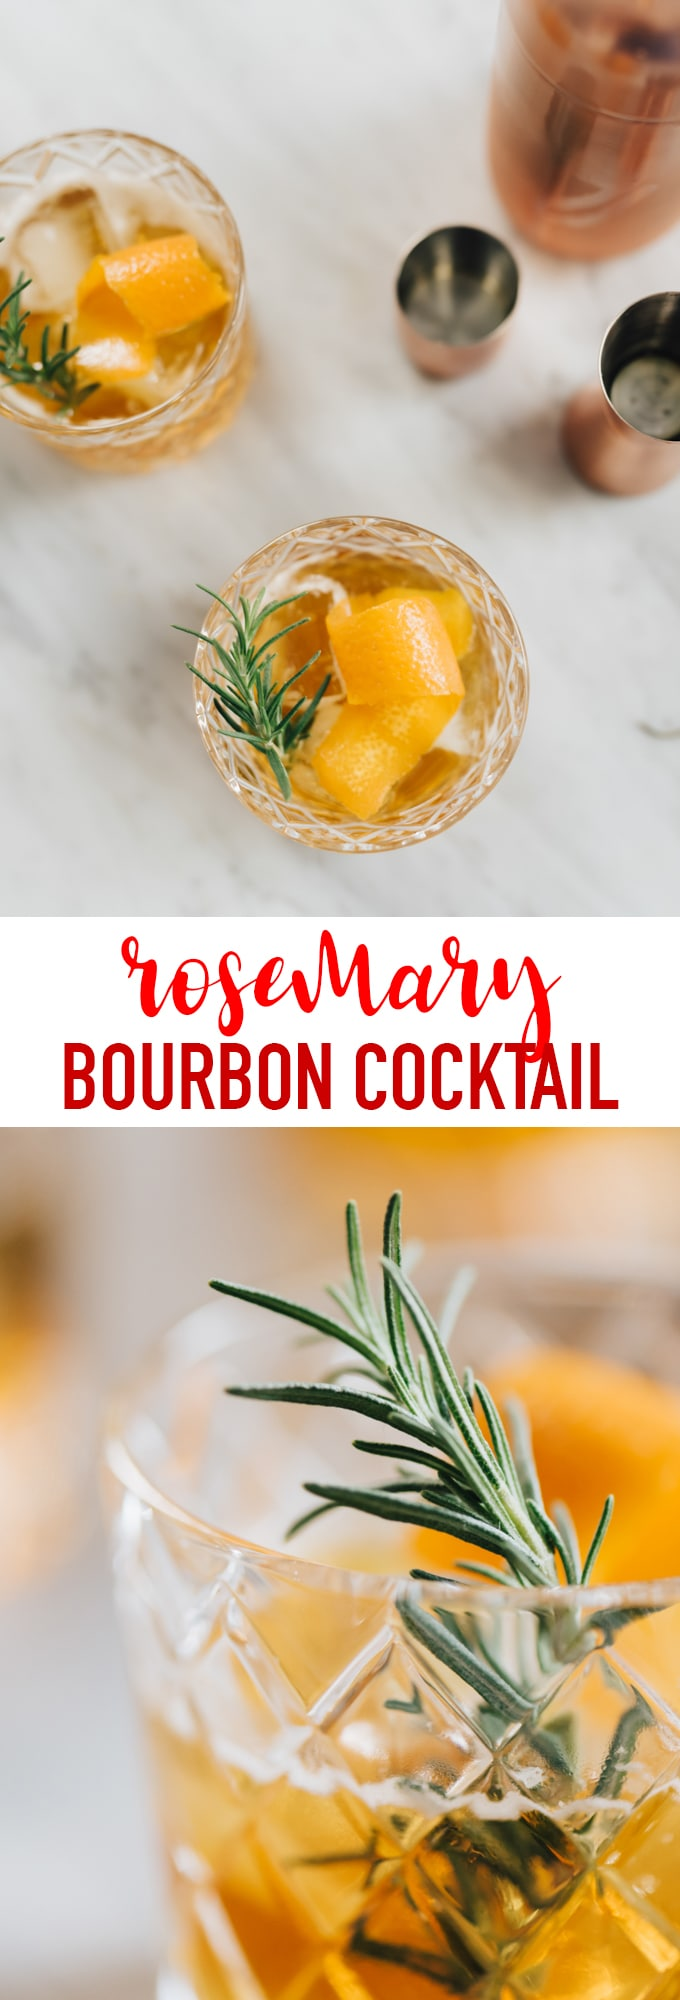 This honey bourbon cocktail with rosemary simple syrup is just the right amount of sweet and savory to share with friends during a cozy and cool autumn evening cocktail hour. The rosemary simple syrup is subtle but distinctive and worth the extra few minutes of prep. #bourbon #cocktail #autumn #fall